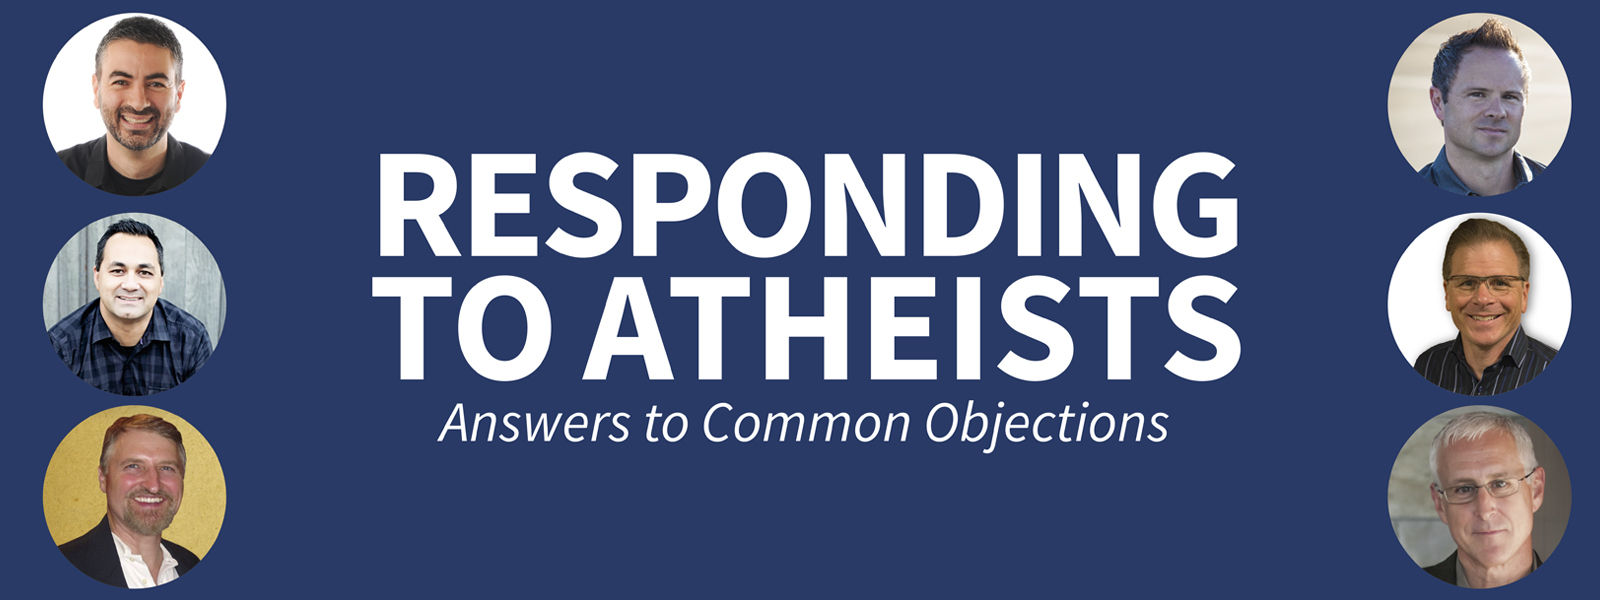 Responding to Athiests